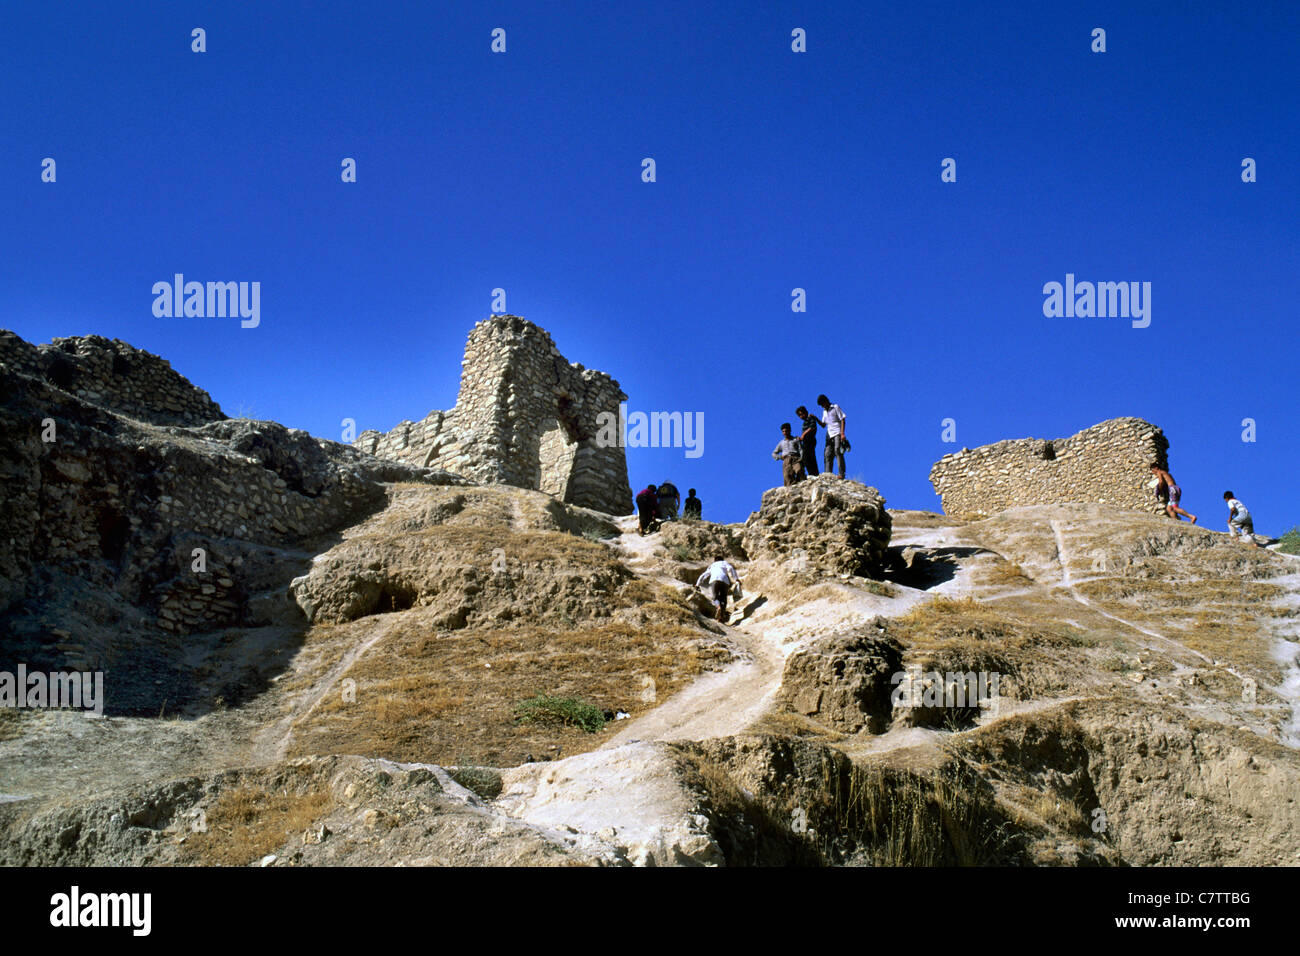 Iraq, Hatra archeoligical site, - Stock Image